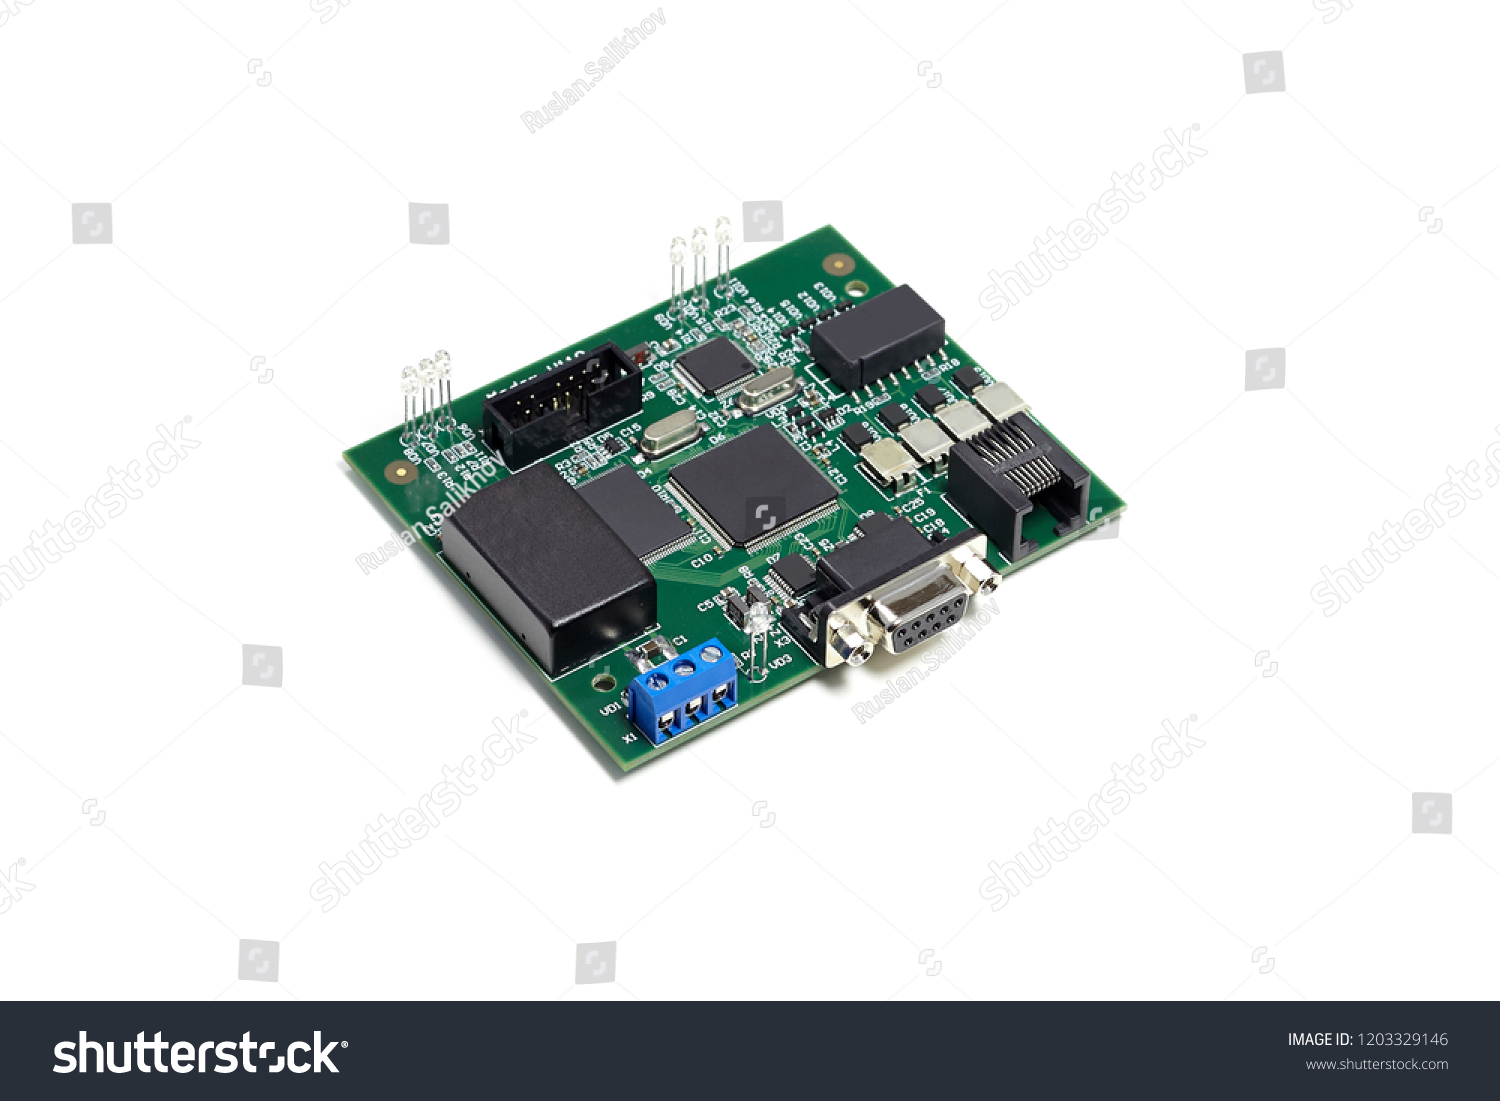 Electronic Printed Circuit Board Microchip Many Stock Photo Edit Photos Images Pictures Shutterstock With Electrical Components And Leds